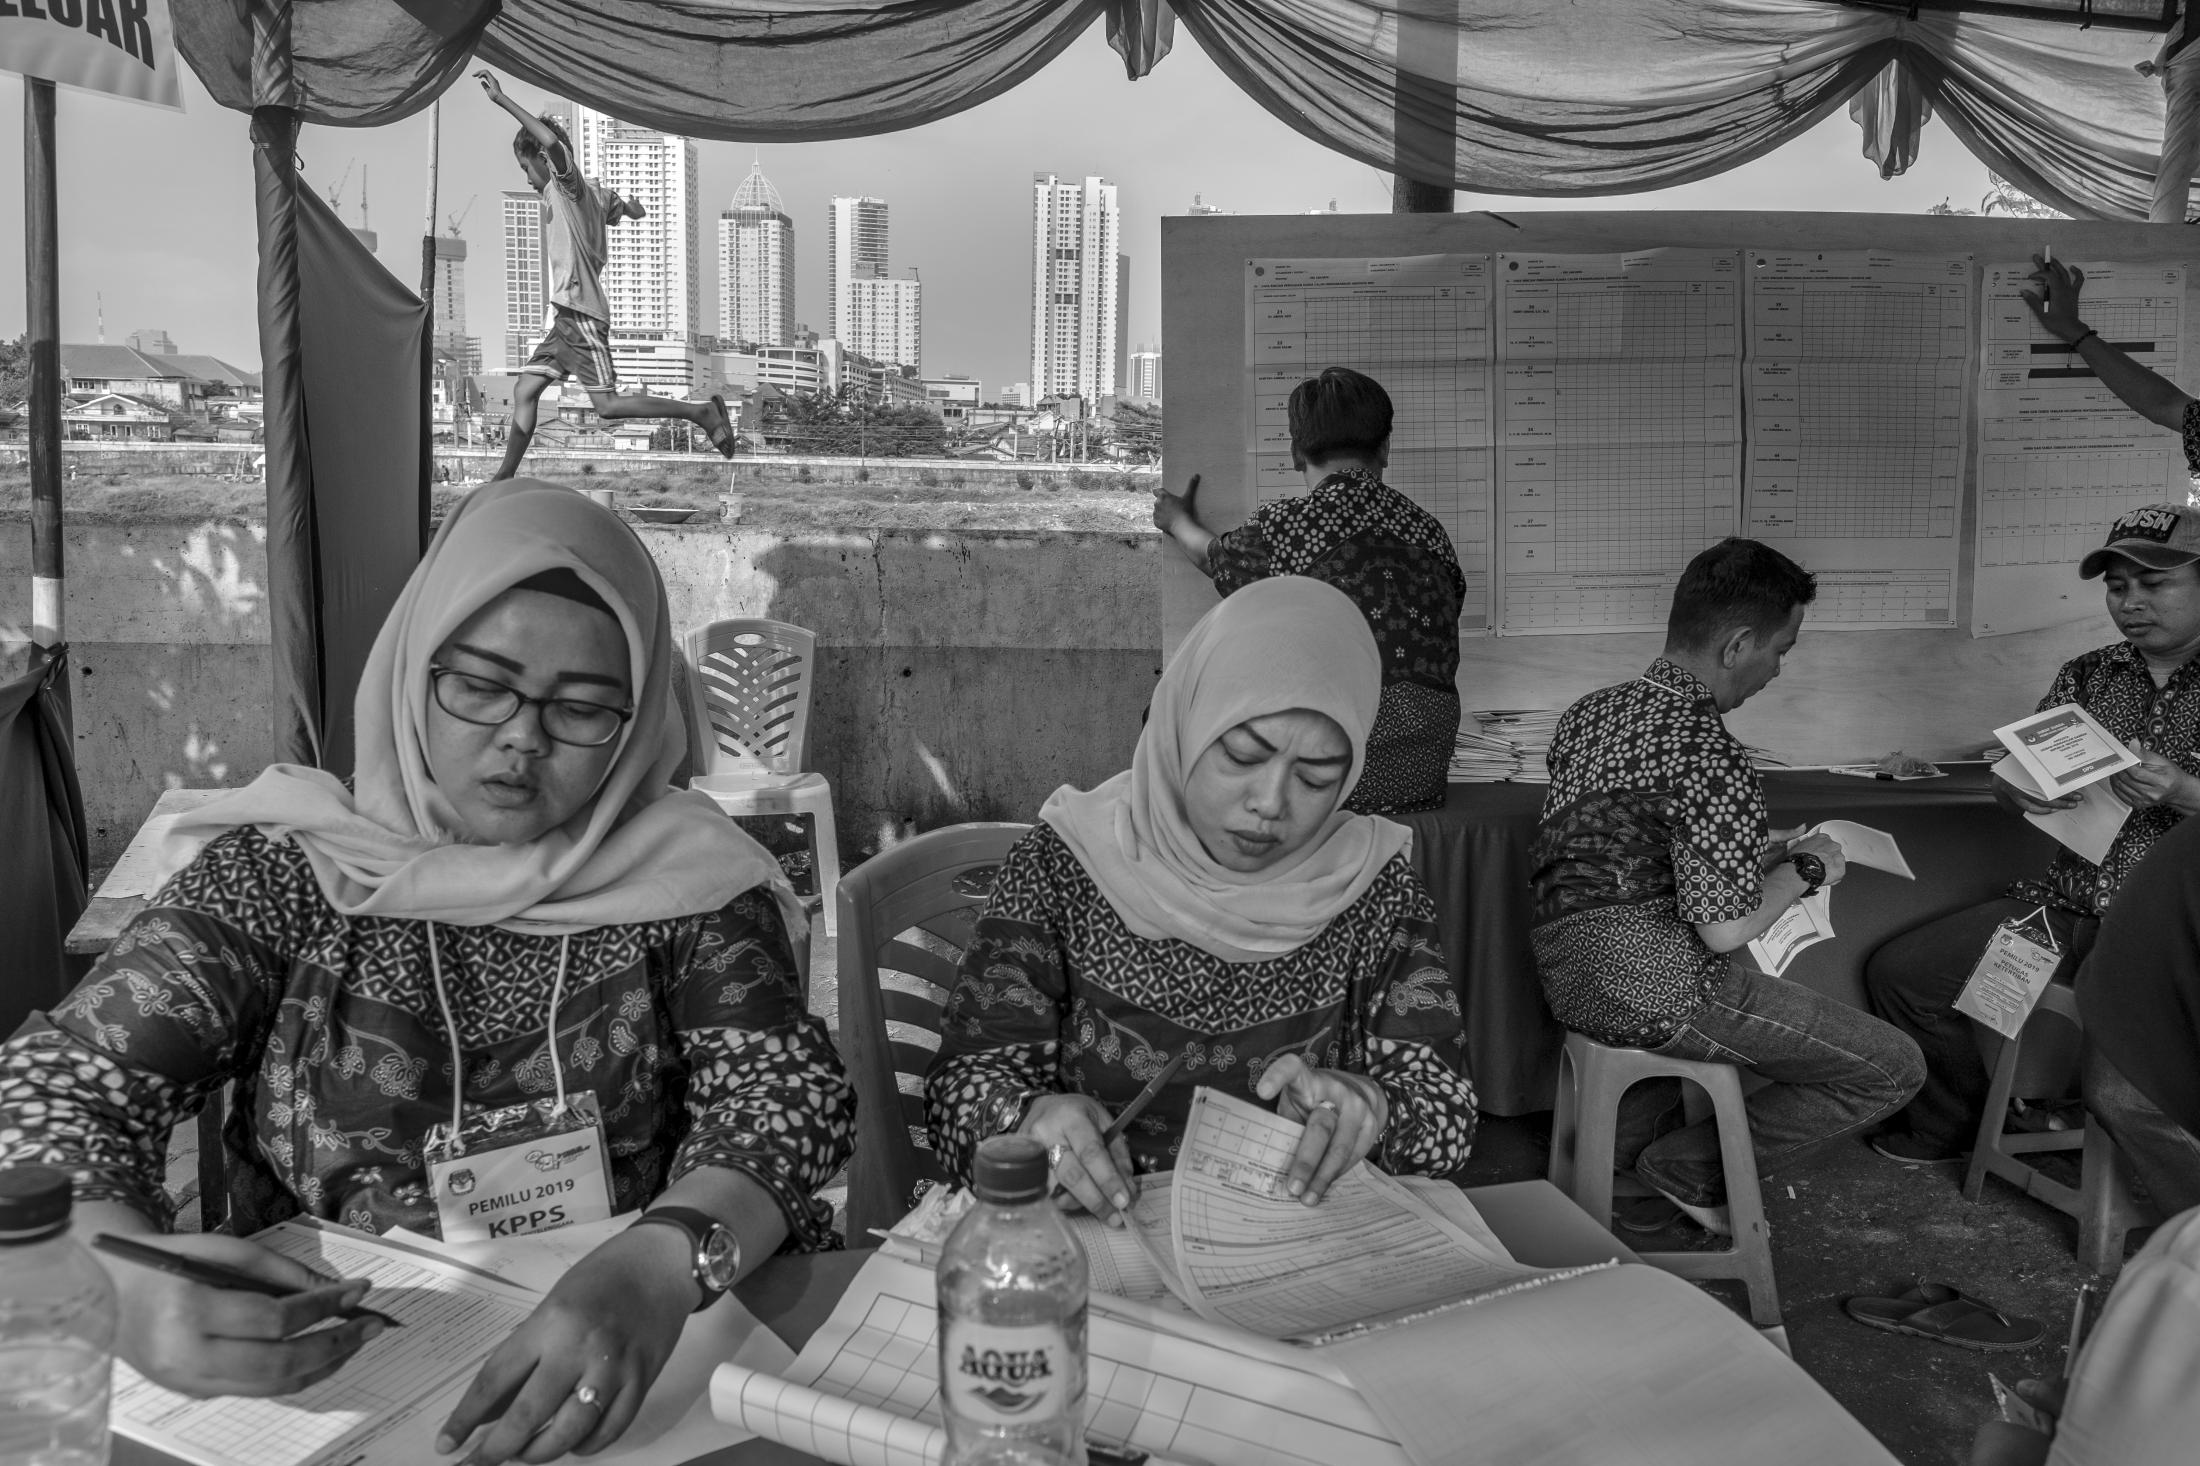 Official quick count, each vote are been read and recorded manually, in a working-class and religiously conservative stronghold of Prabowo Subianto, Indonesian presidential candidate, in Jakarta, Indonesia April 17, 2019. Besides the Presidential election, more than 192 million people voted in Presidential, national and regional legislative elections, choosing from over 245,000 candidates at more than 800,000 polling stations. At 268 million people, Indonesia has the world's fourth-largest population after China, India, and the United States. It is the largest Muslim-majority nation in the world and one of the very few of these that successfully established a democratic political system. Indonesia also leads the 10-nation Association of Southeast Asian Nations (ASEAN) community.